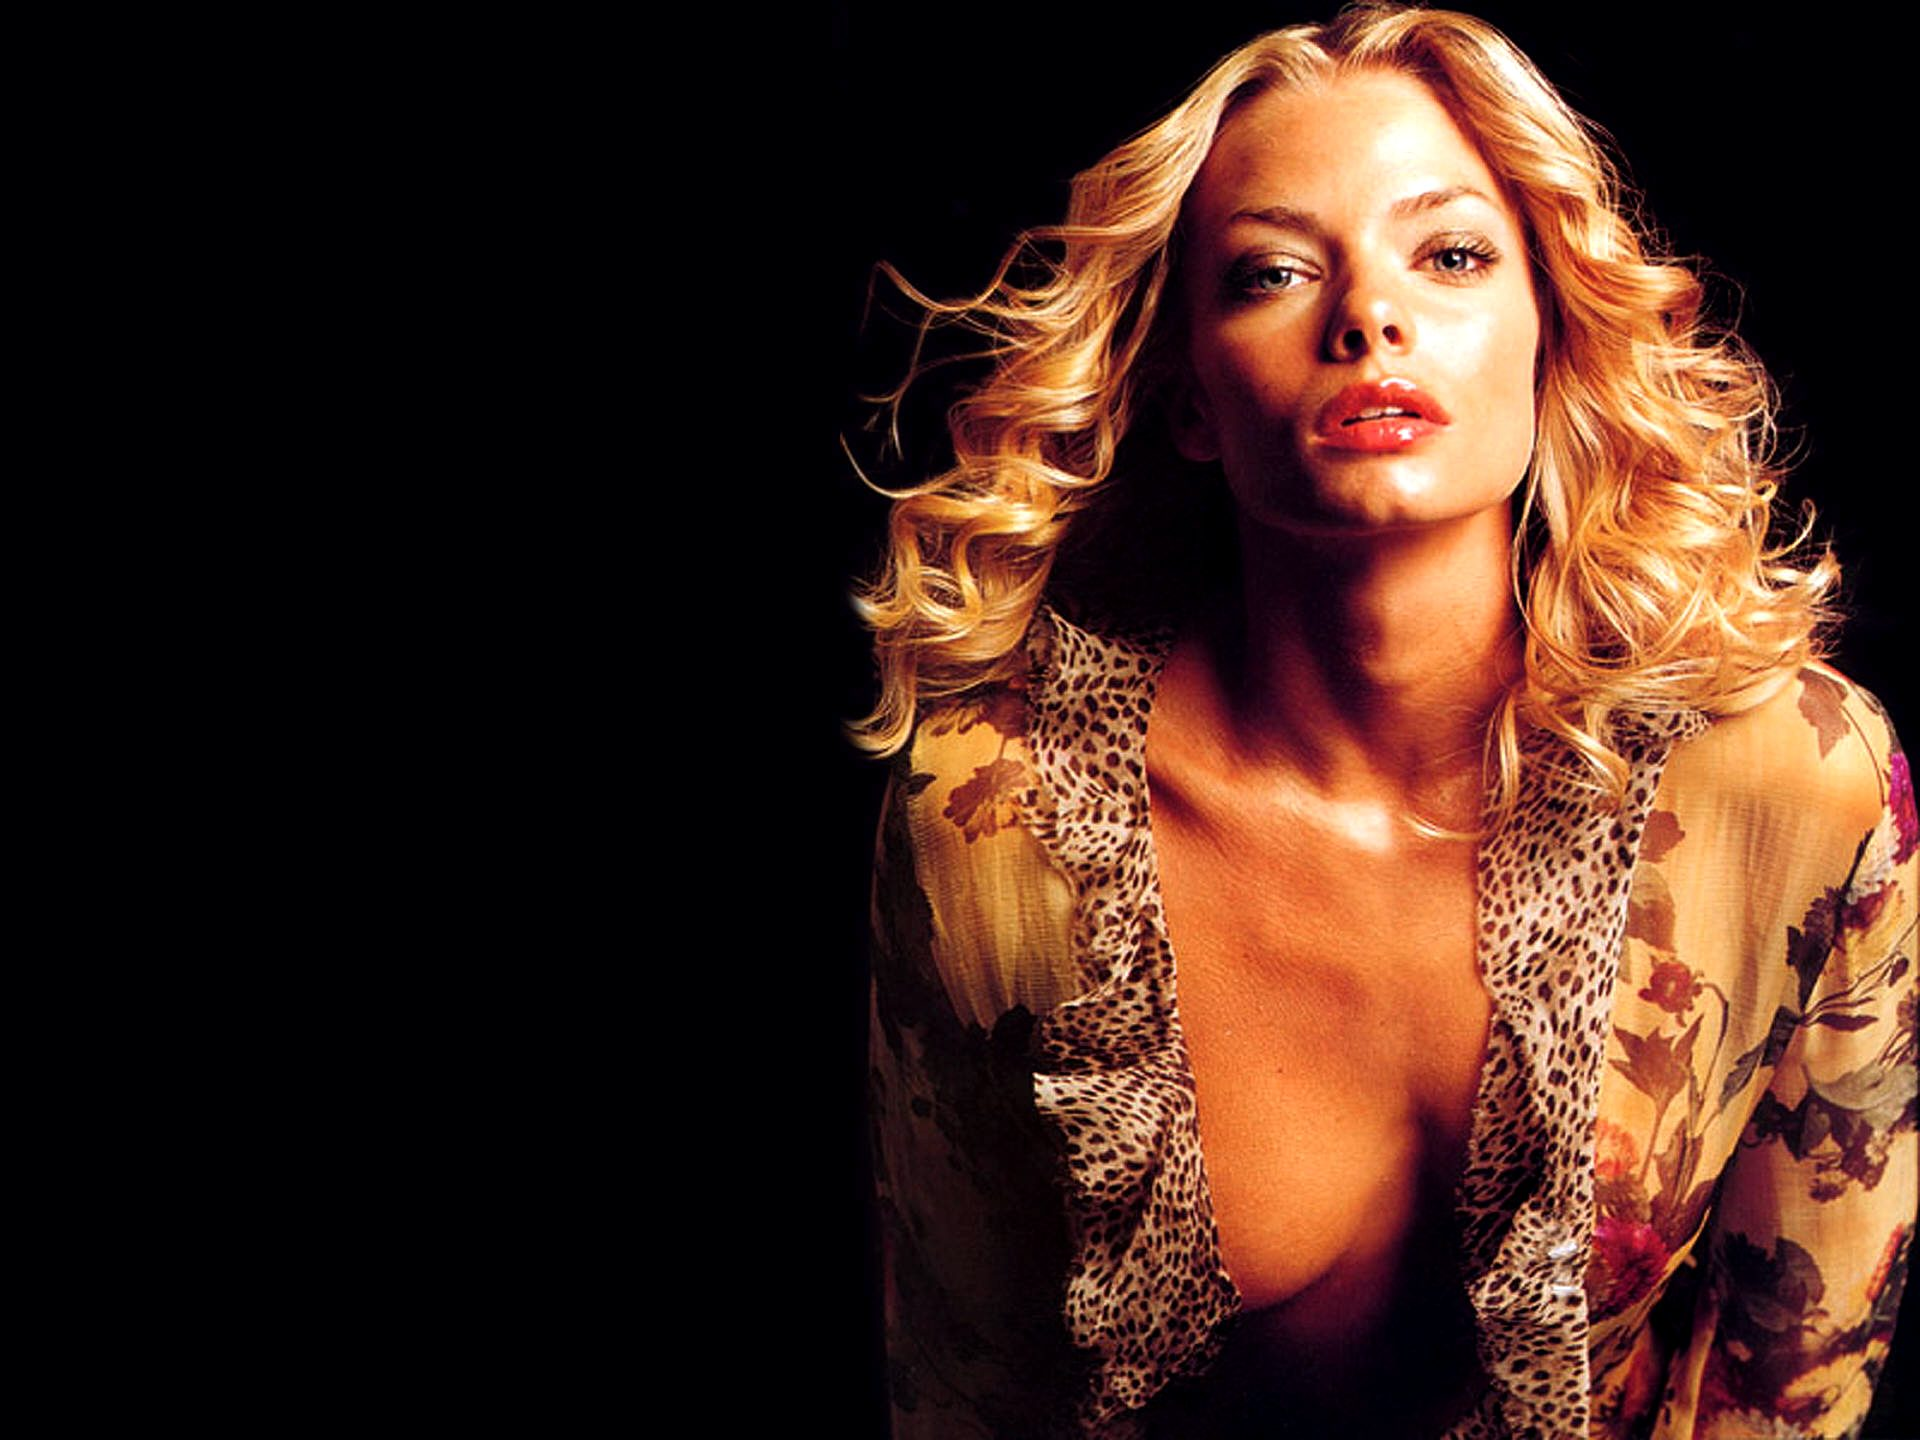 1920x1440 - Jaime Pressly Wallpapers 20